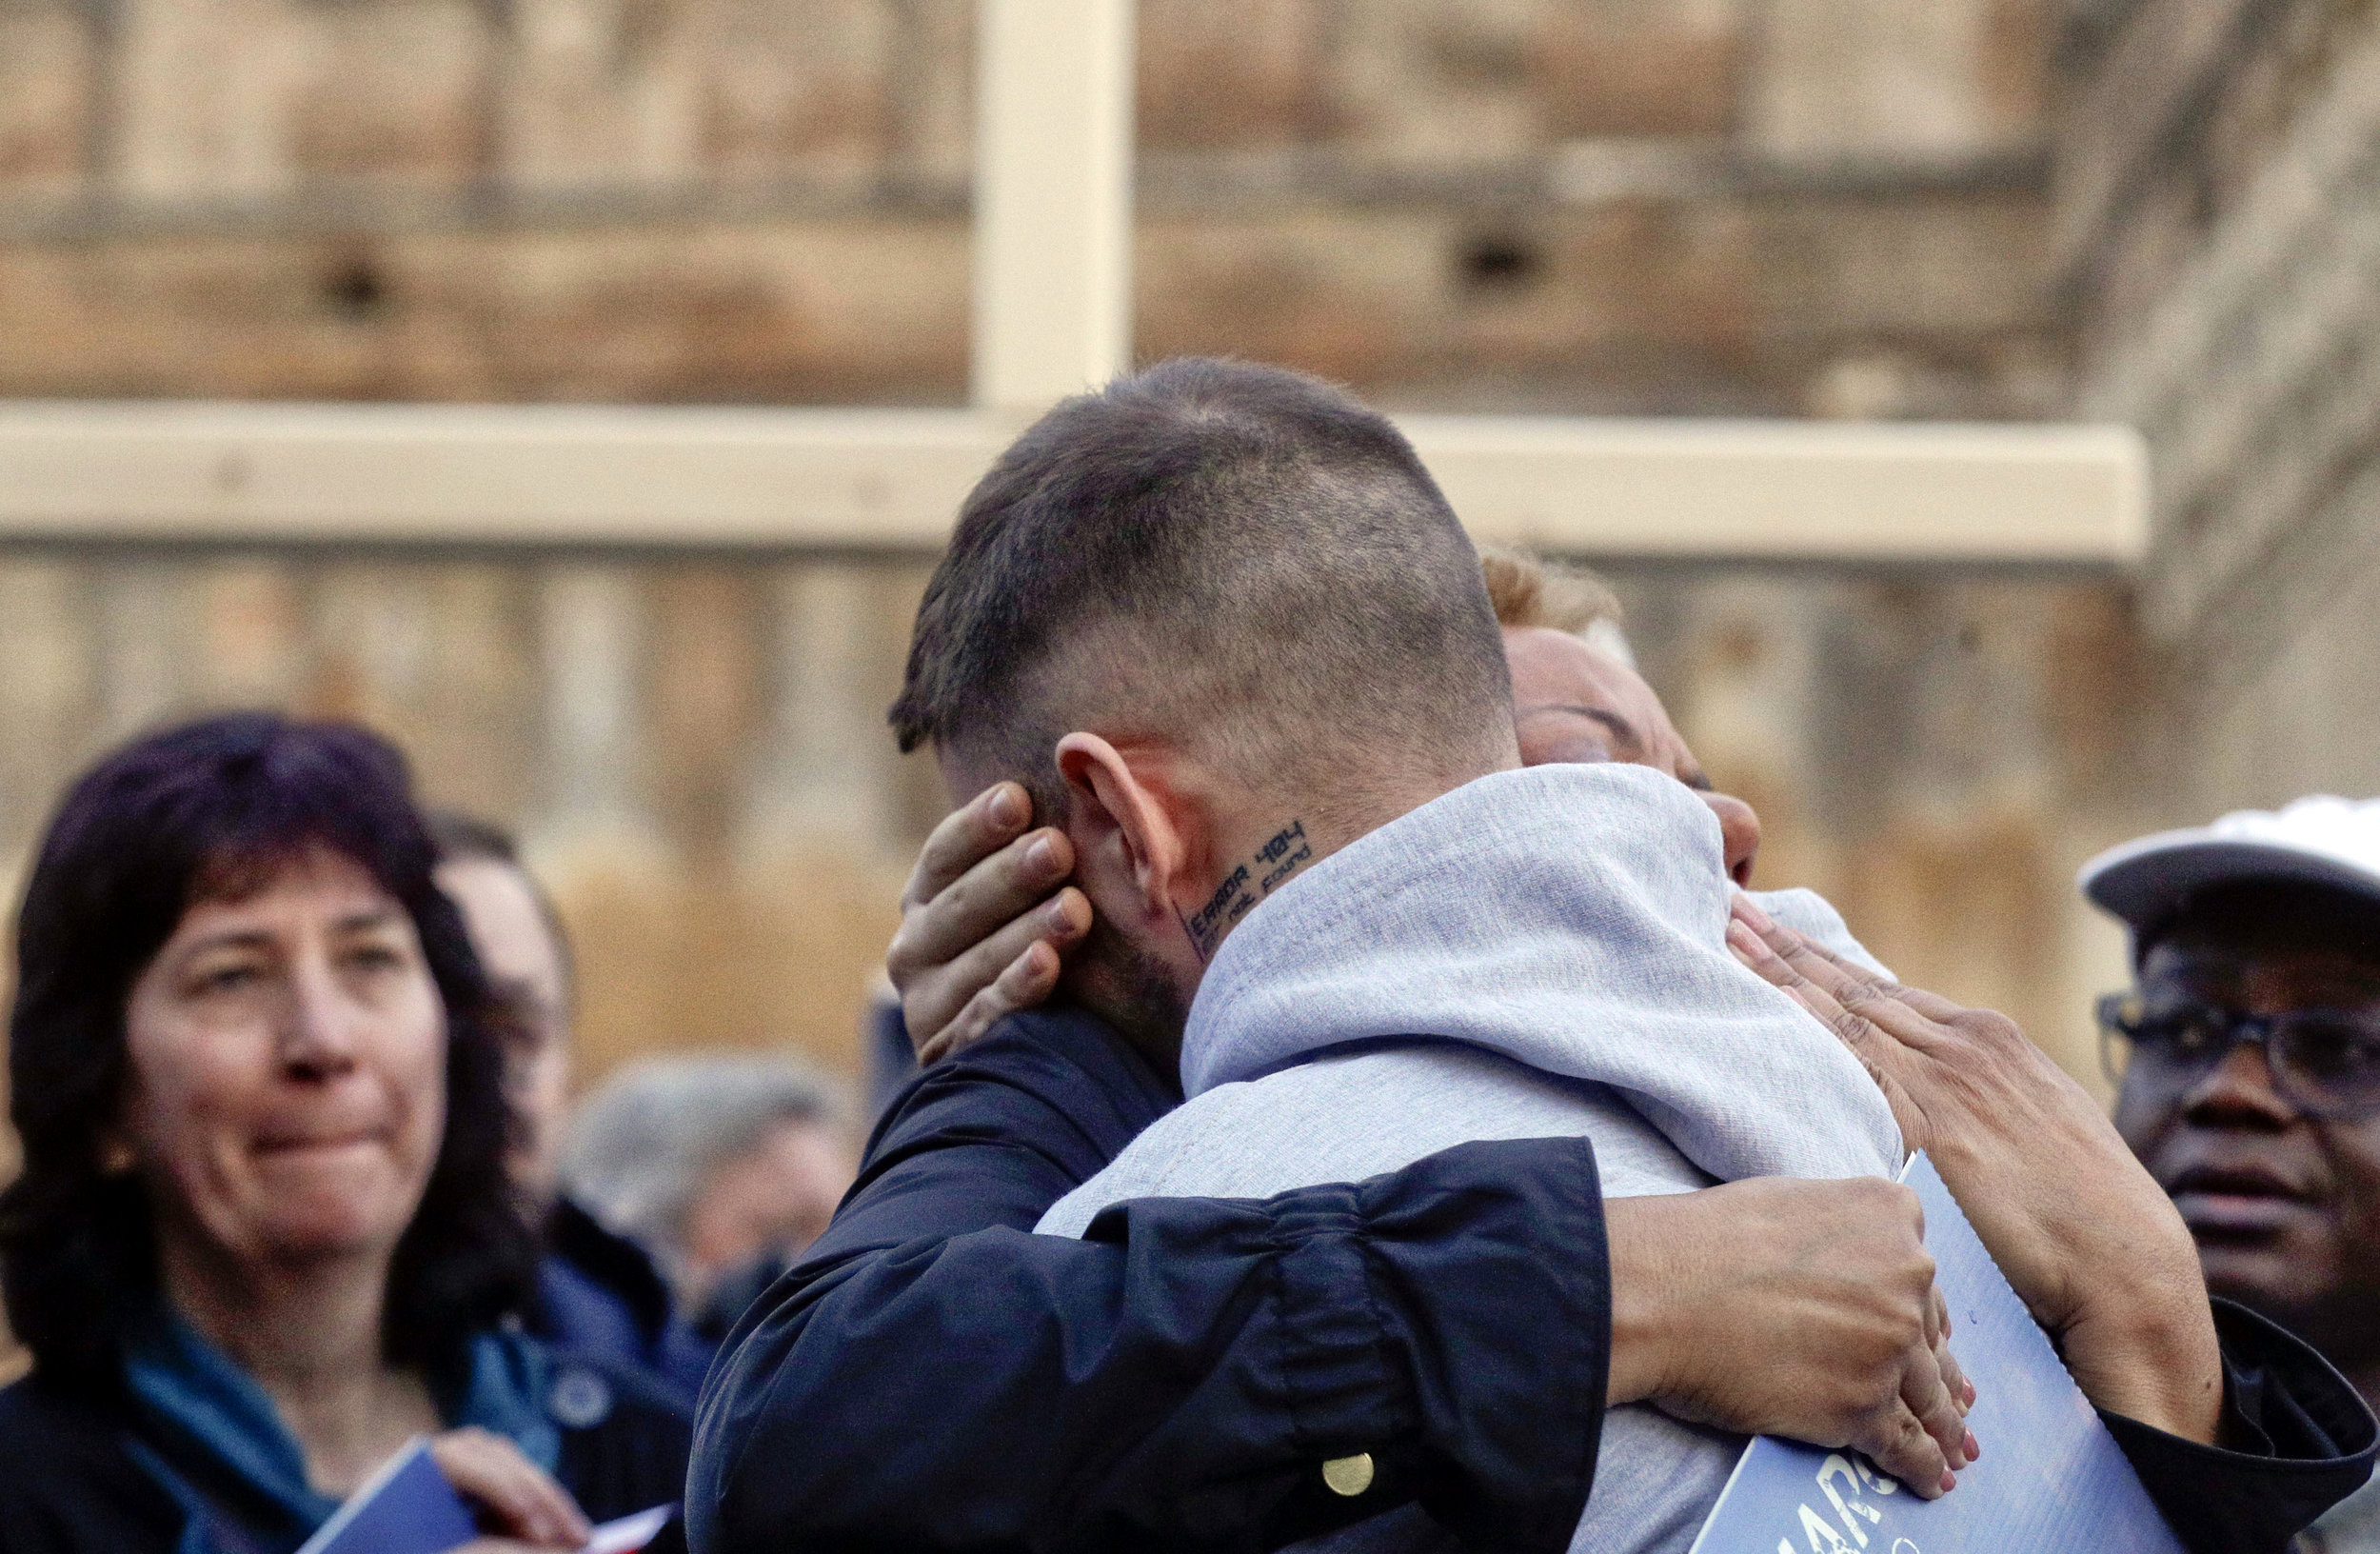 Survivors of clergy sex abuse hug during a twilight vigil prayer near Castle Sant' Angelo, in Rome on Thursday during a landmark sex abuse prevention summit. AP Photo/Gregorio Borgia.